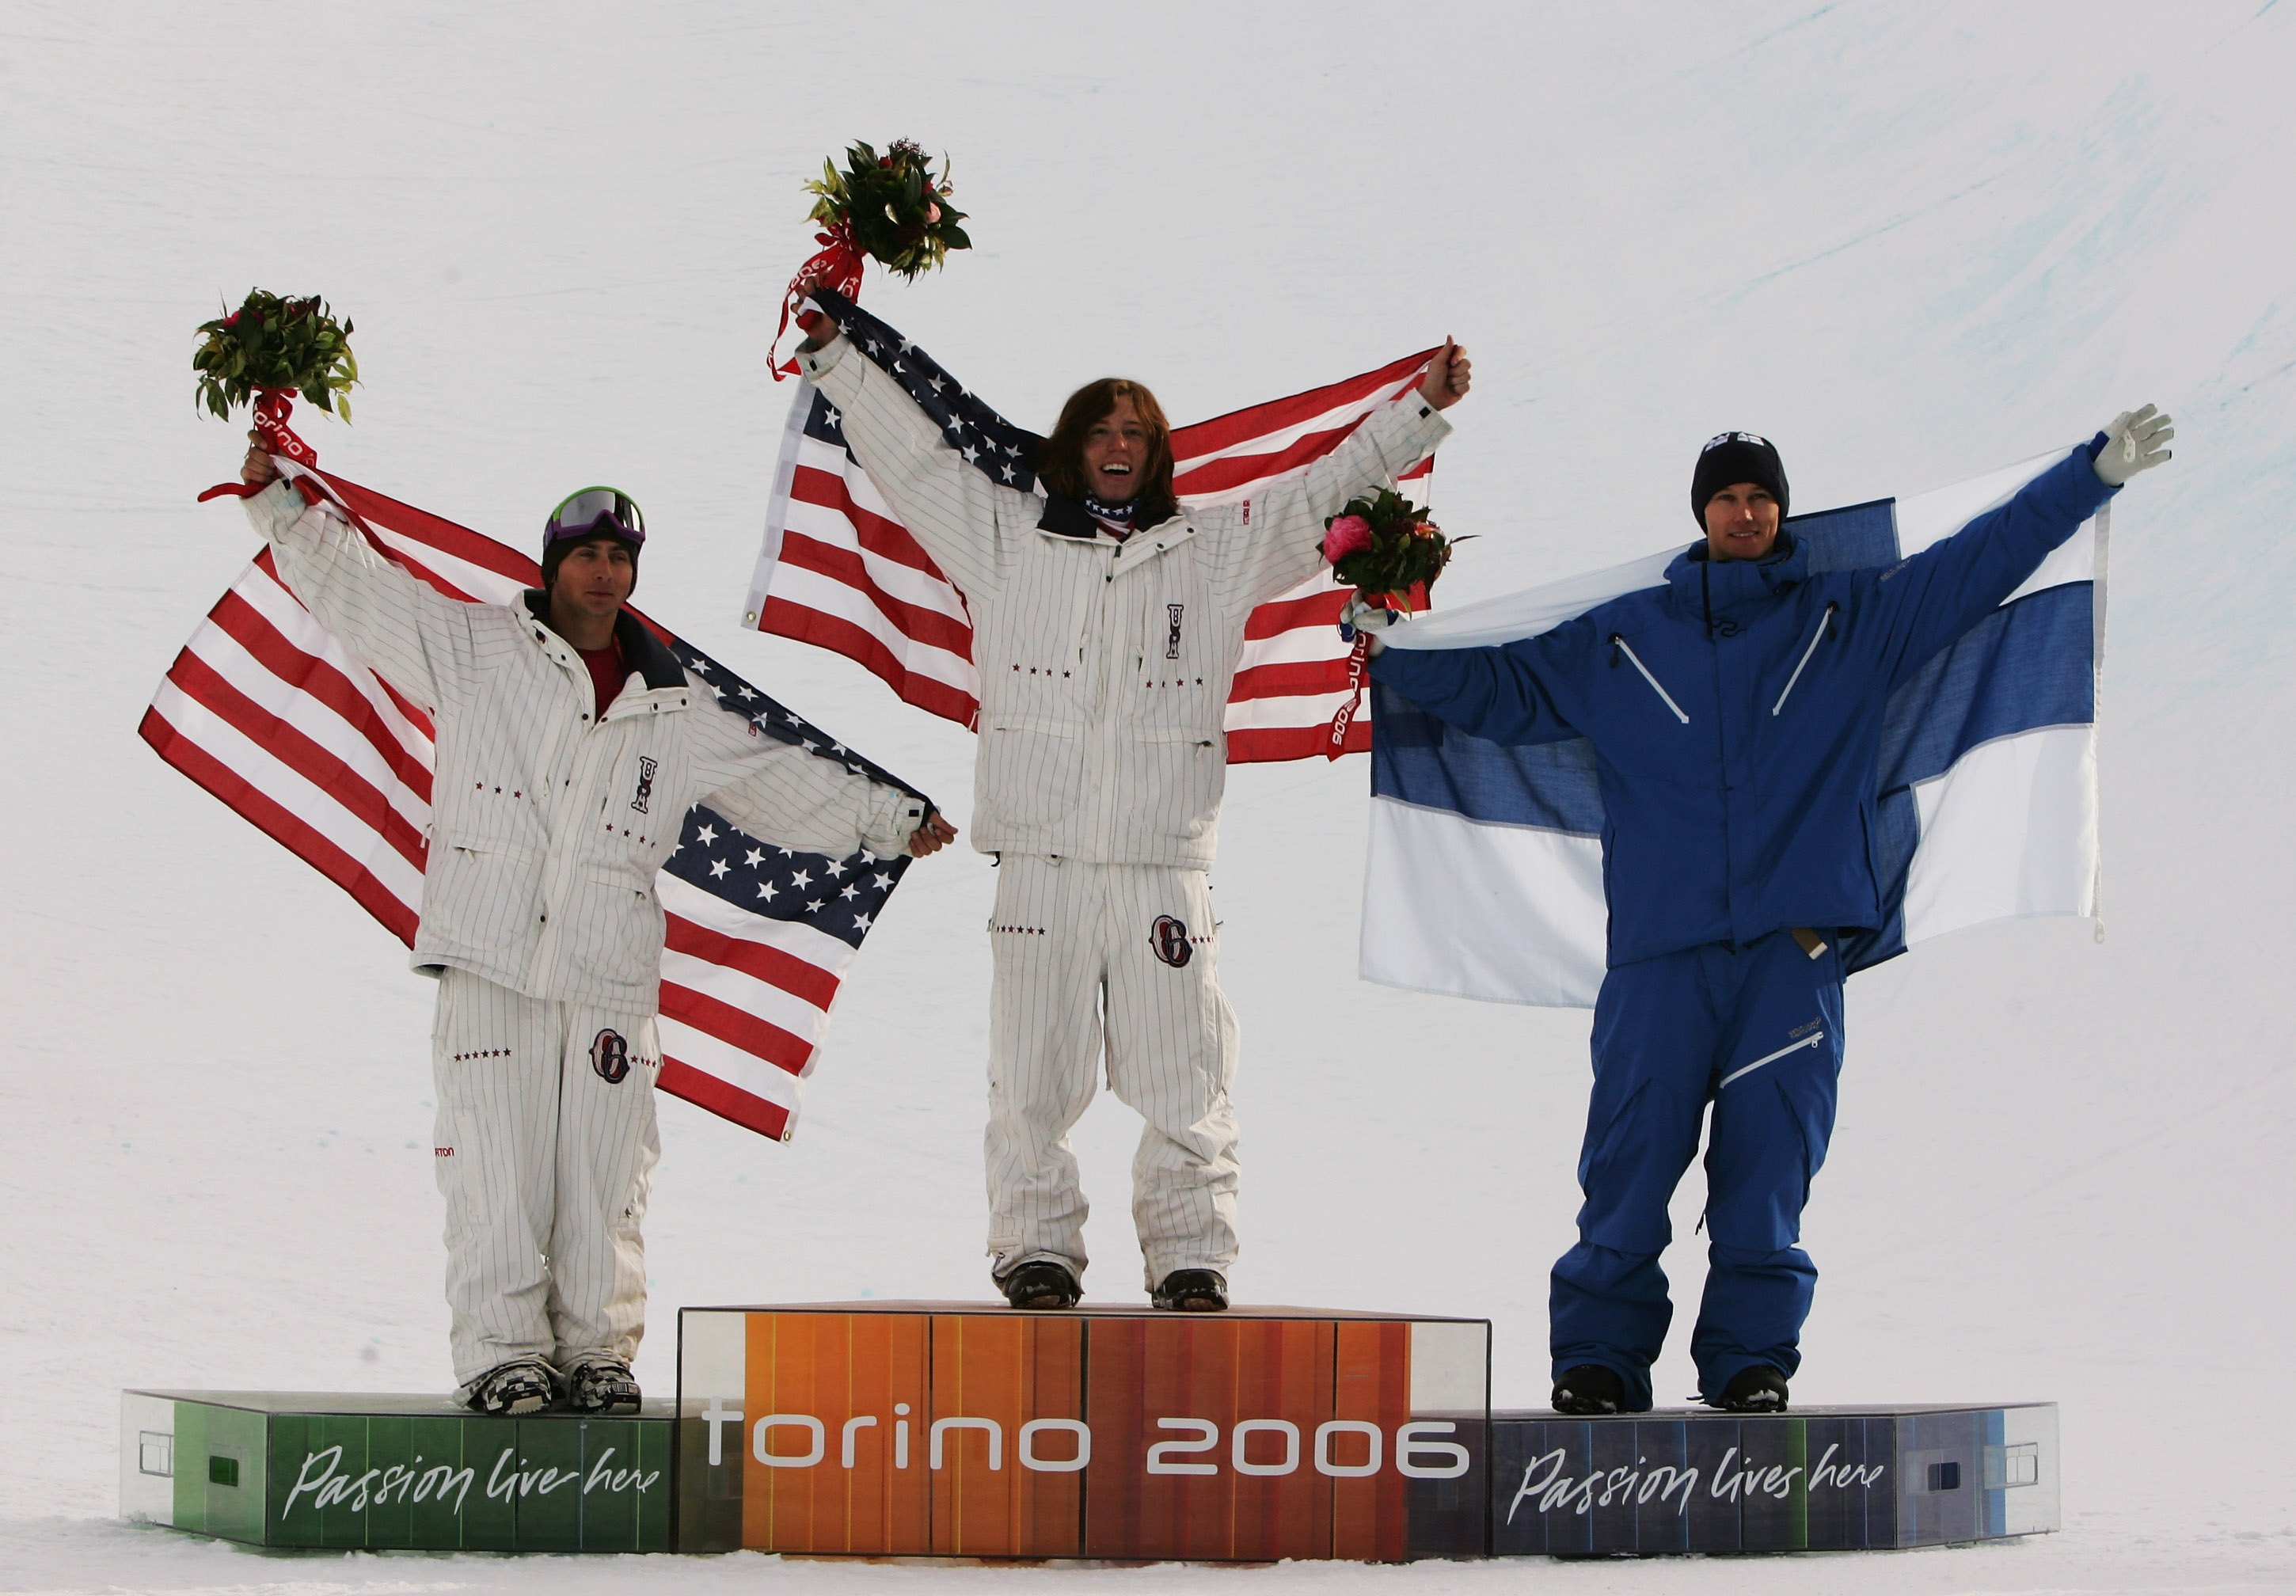 Shaun White (C) celebrates after winning the Gold Medal with teammate Daniel Kass (L) and Markku Koski of Finland in the Mens Snowboard Half Pipe Final at the 2006 Turin Winter Olympic Games in Bardonecchia, Italy. Adam Pretty—Getty Images